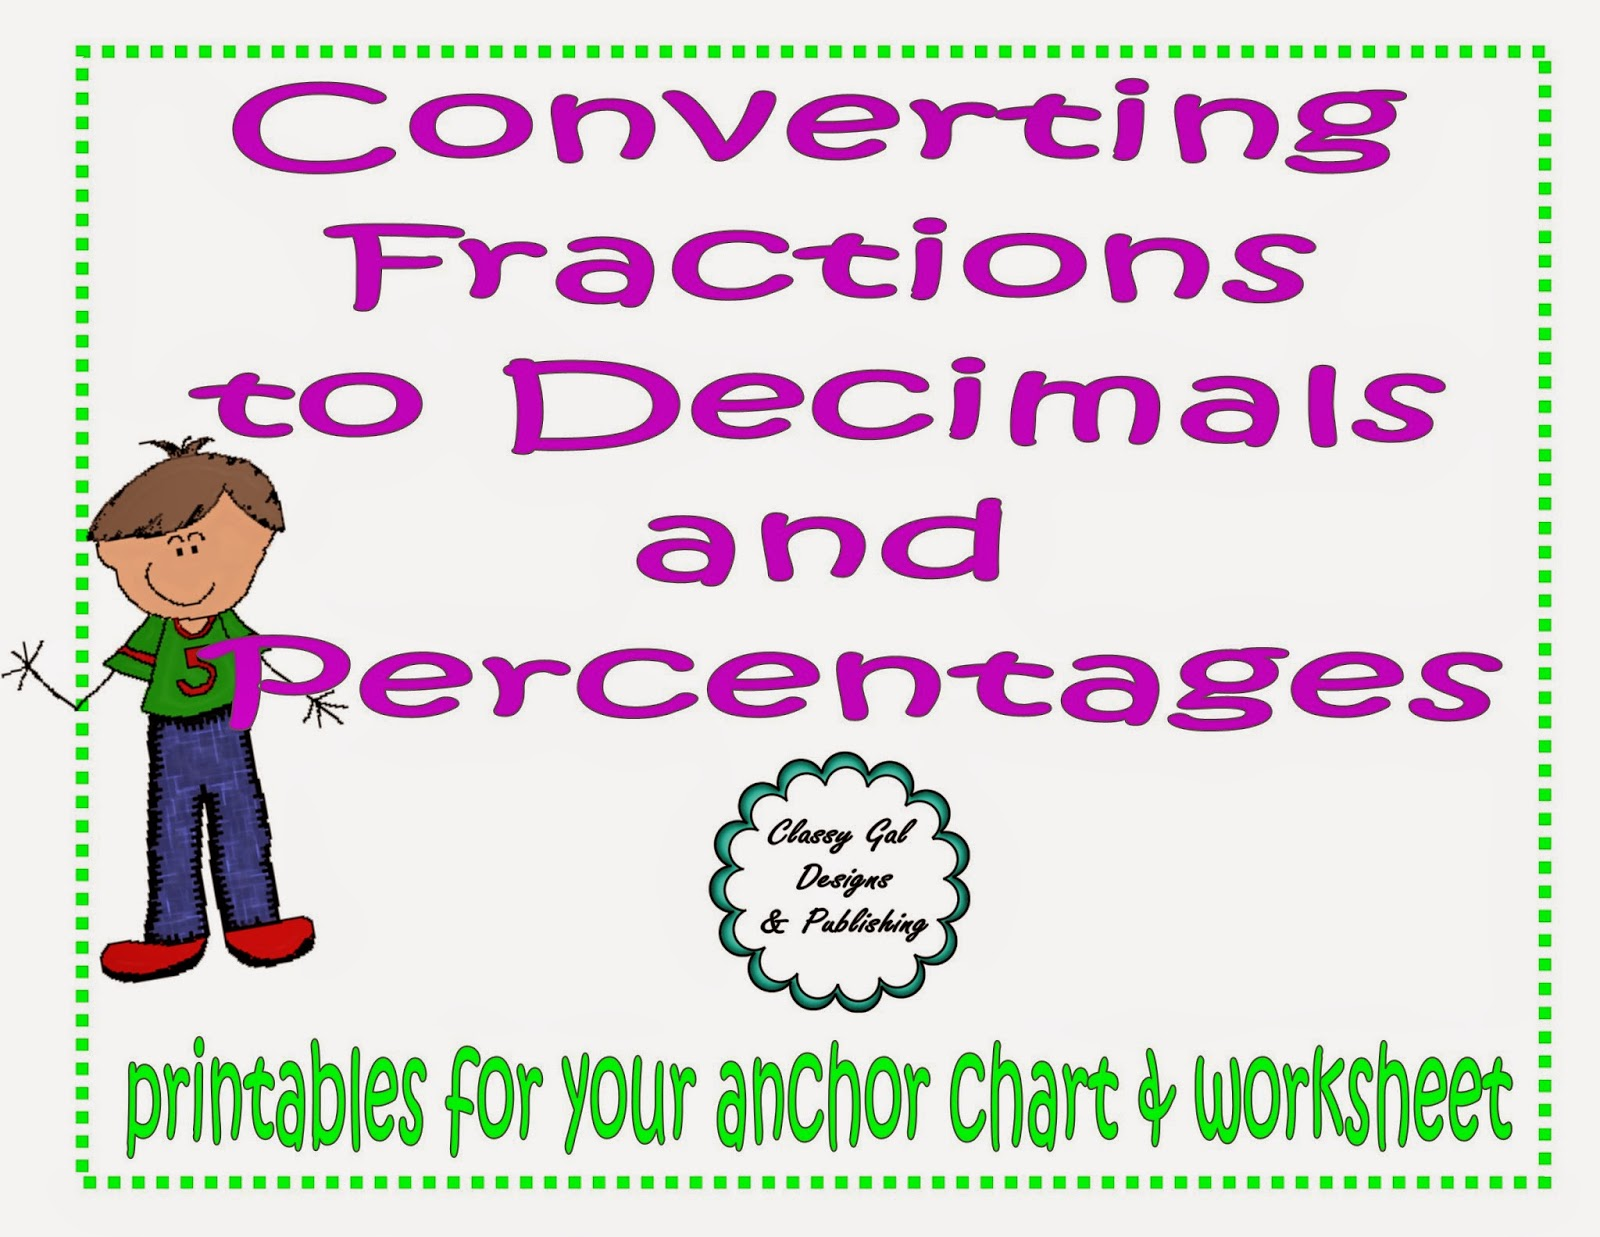 ... Printable Anchor Chart: Converting Fractions to Decimals & Percentages